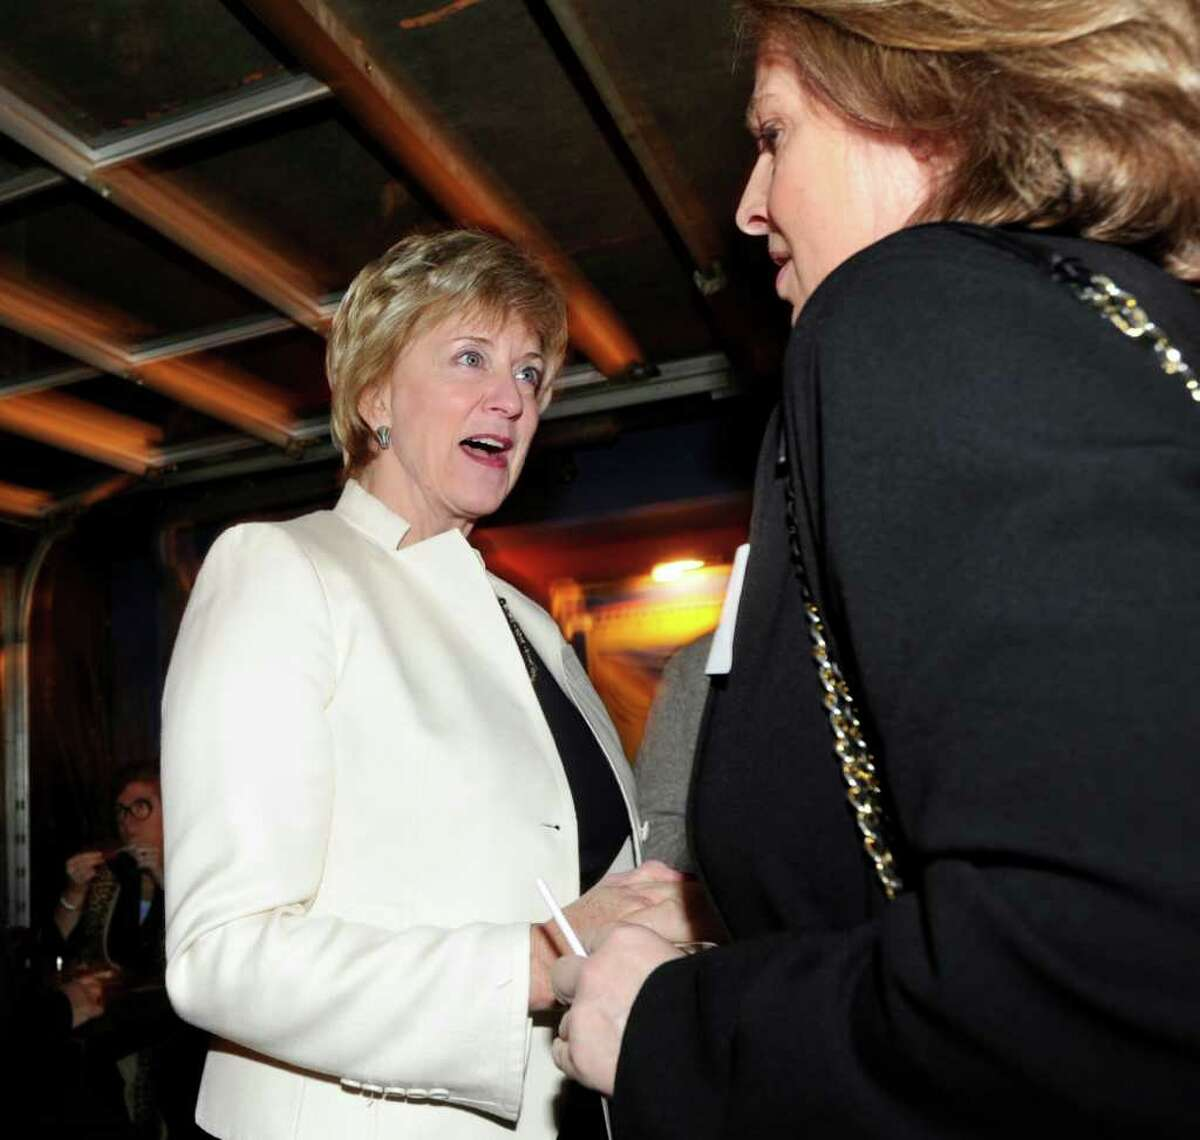 Republican U.S. Senate candidate Linda McMahon, left, meets Clare Powell of Stamford during an appearance in Stamford Feb. 2, 2012.